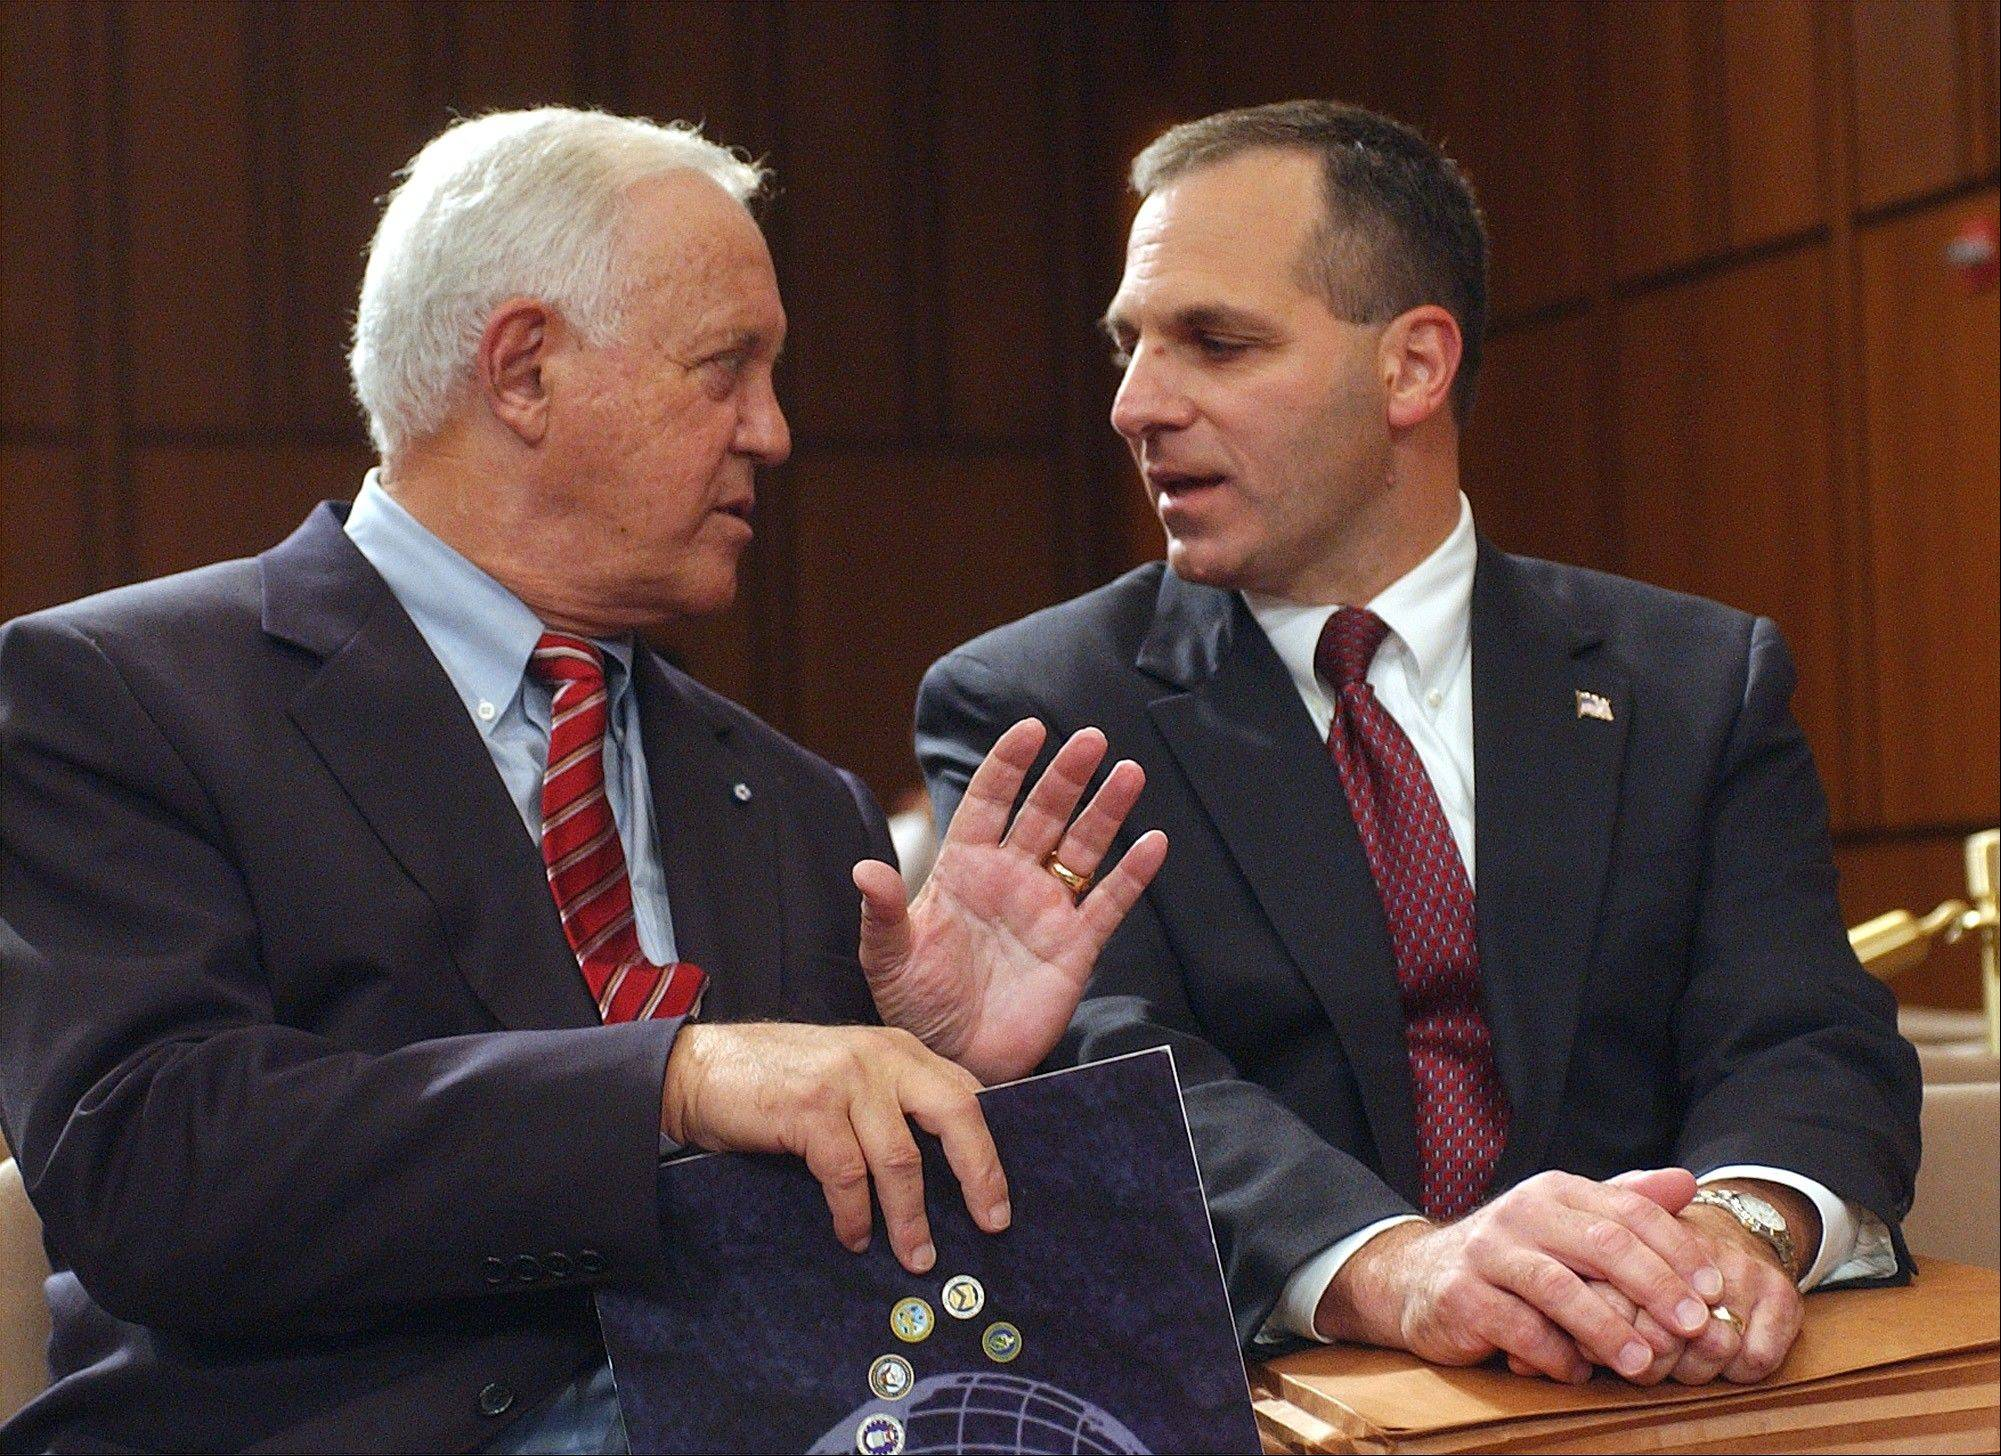 Former New Hampshire Sen. Warren Rudman, left, talks with former FBI Director Louis Freeh on Capitol Hill in Washington in this file photo from 2002. Rudman, who co-authored a ground-breaking budget balancing law, championed ethics and led